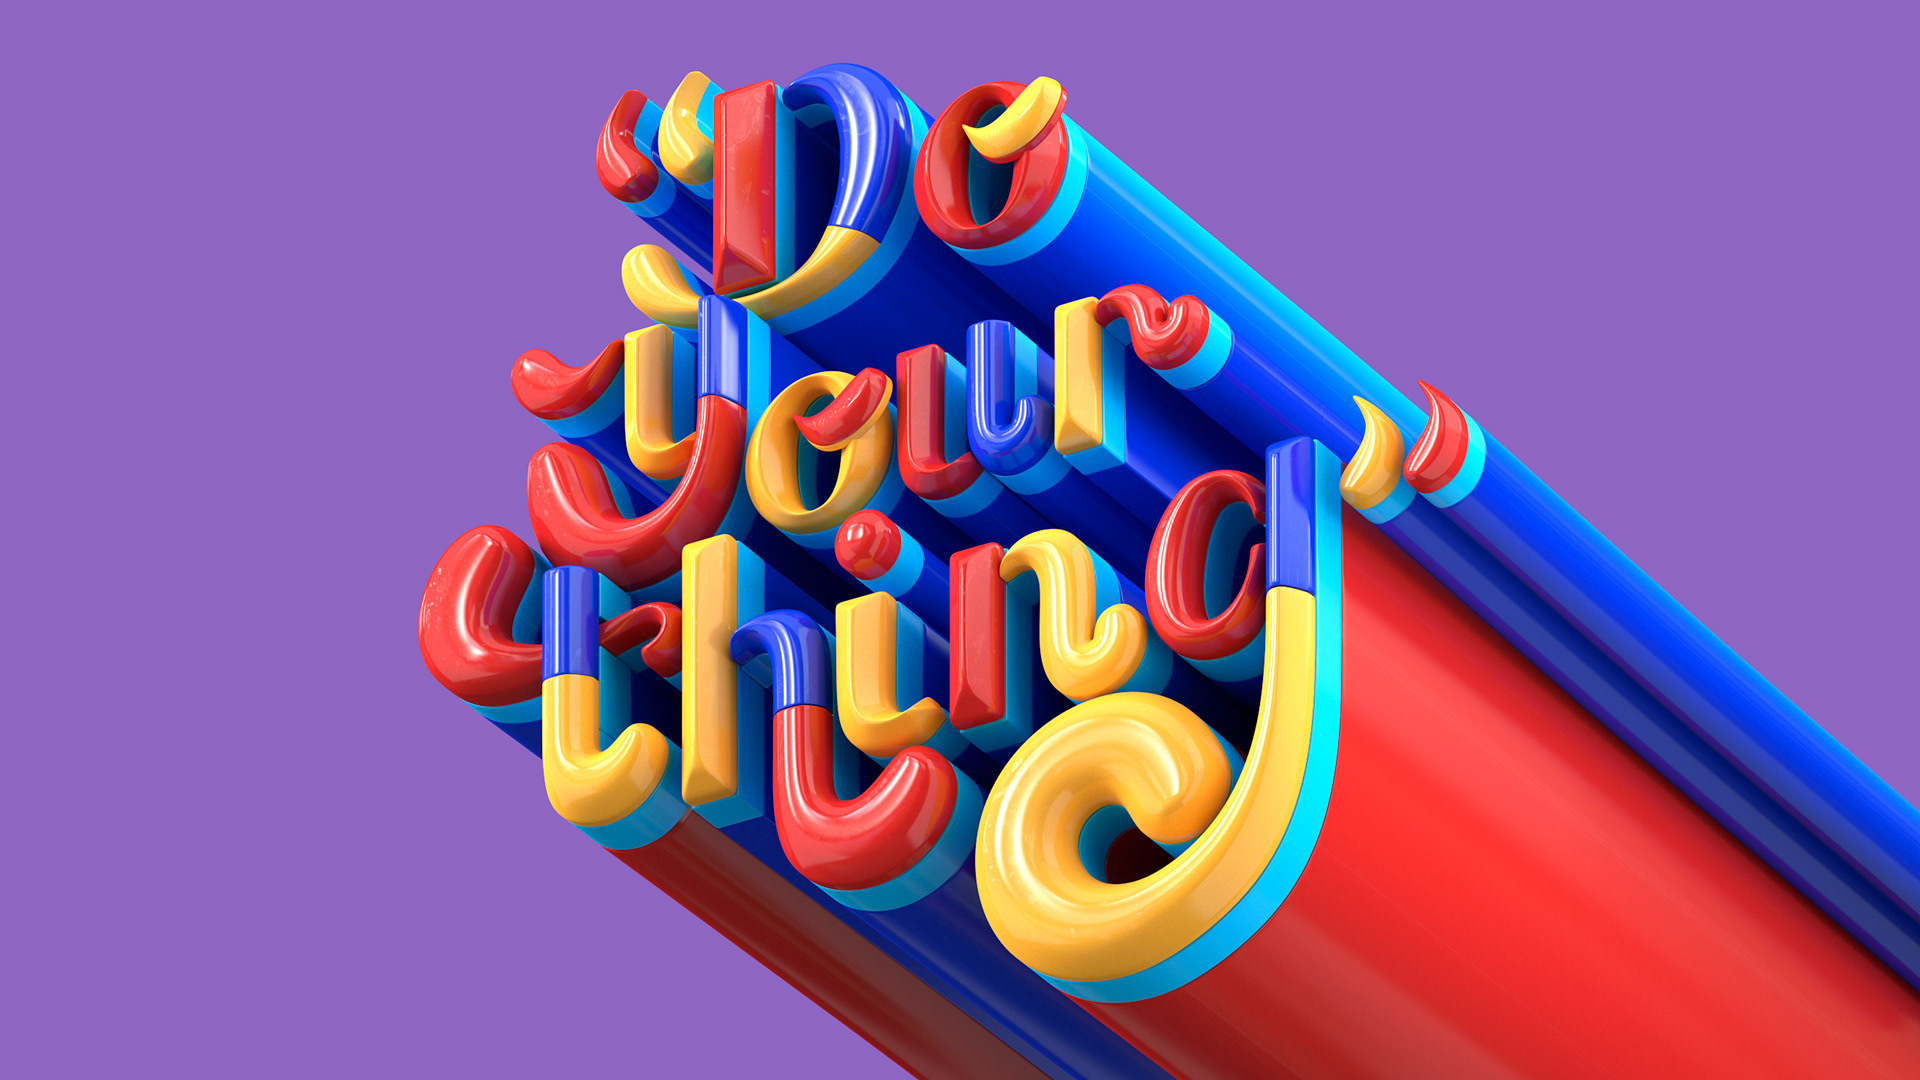 Illustration,Typography,Graphic Design